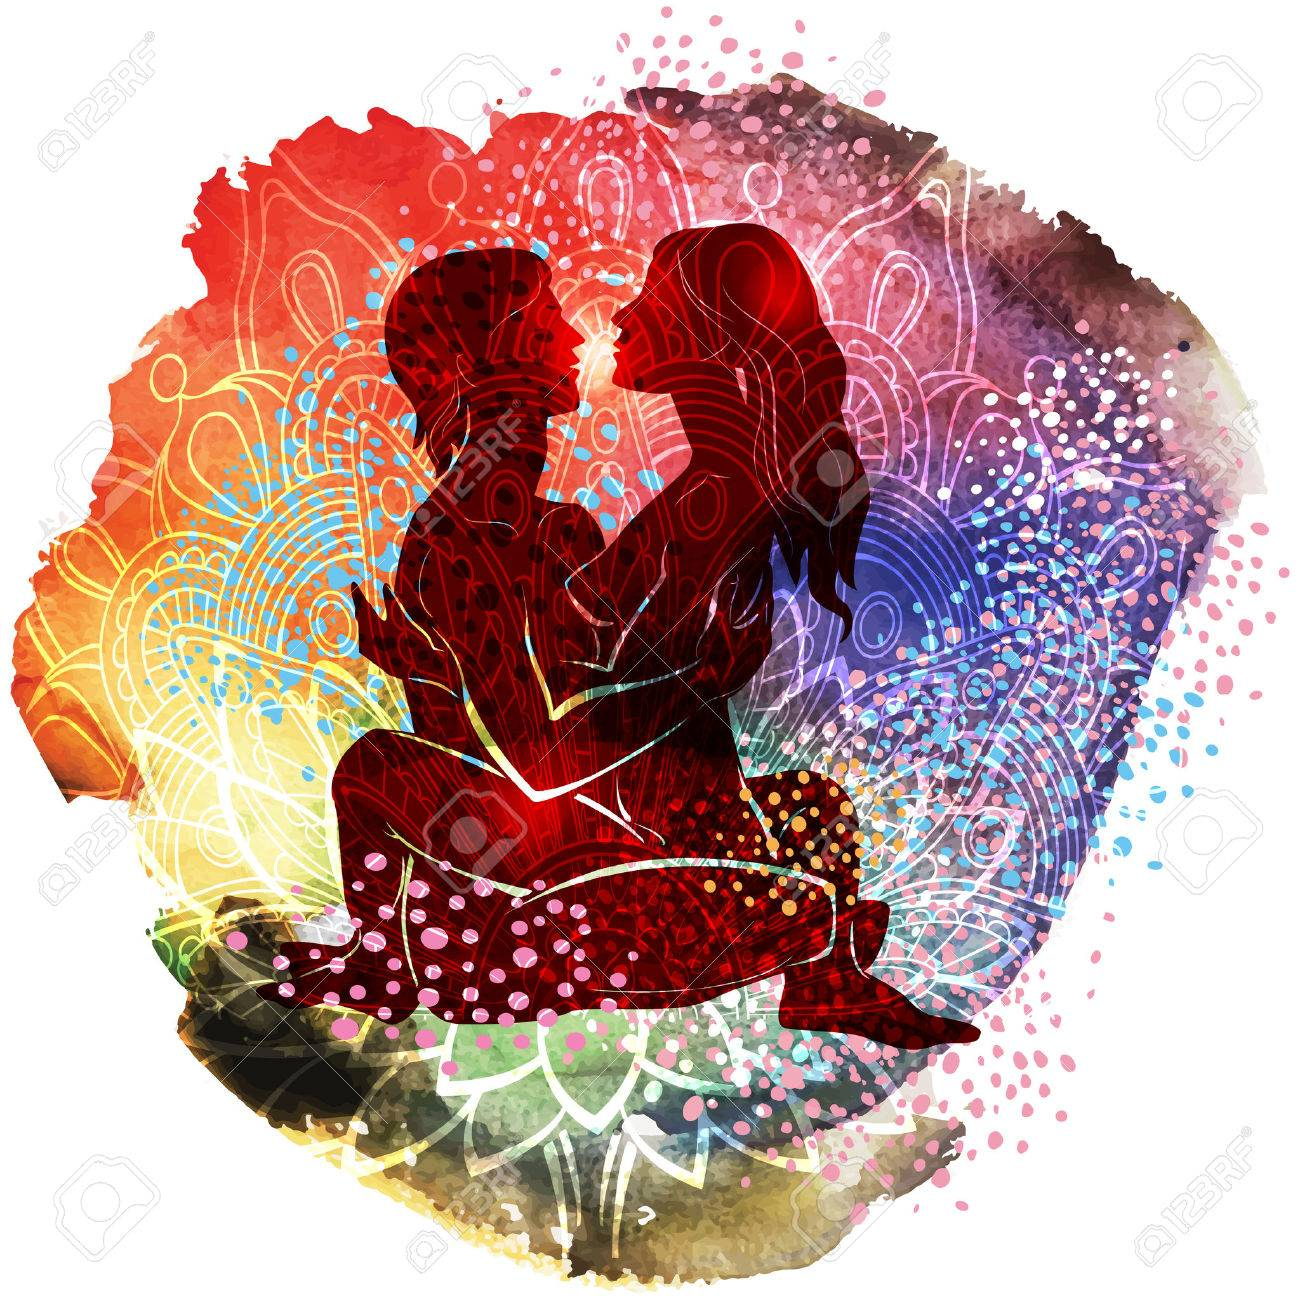 Couple practicing tantra yoga an watercolor pattern - 73907307